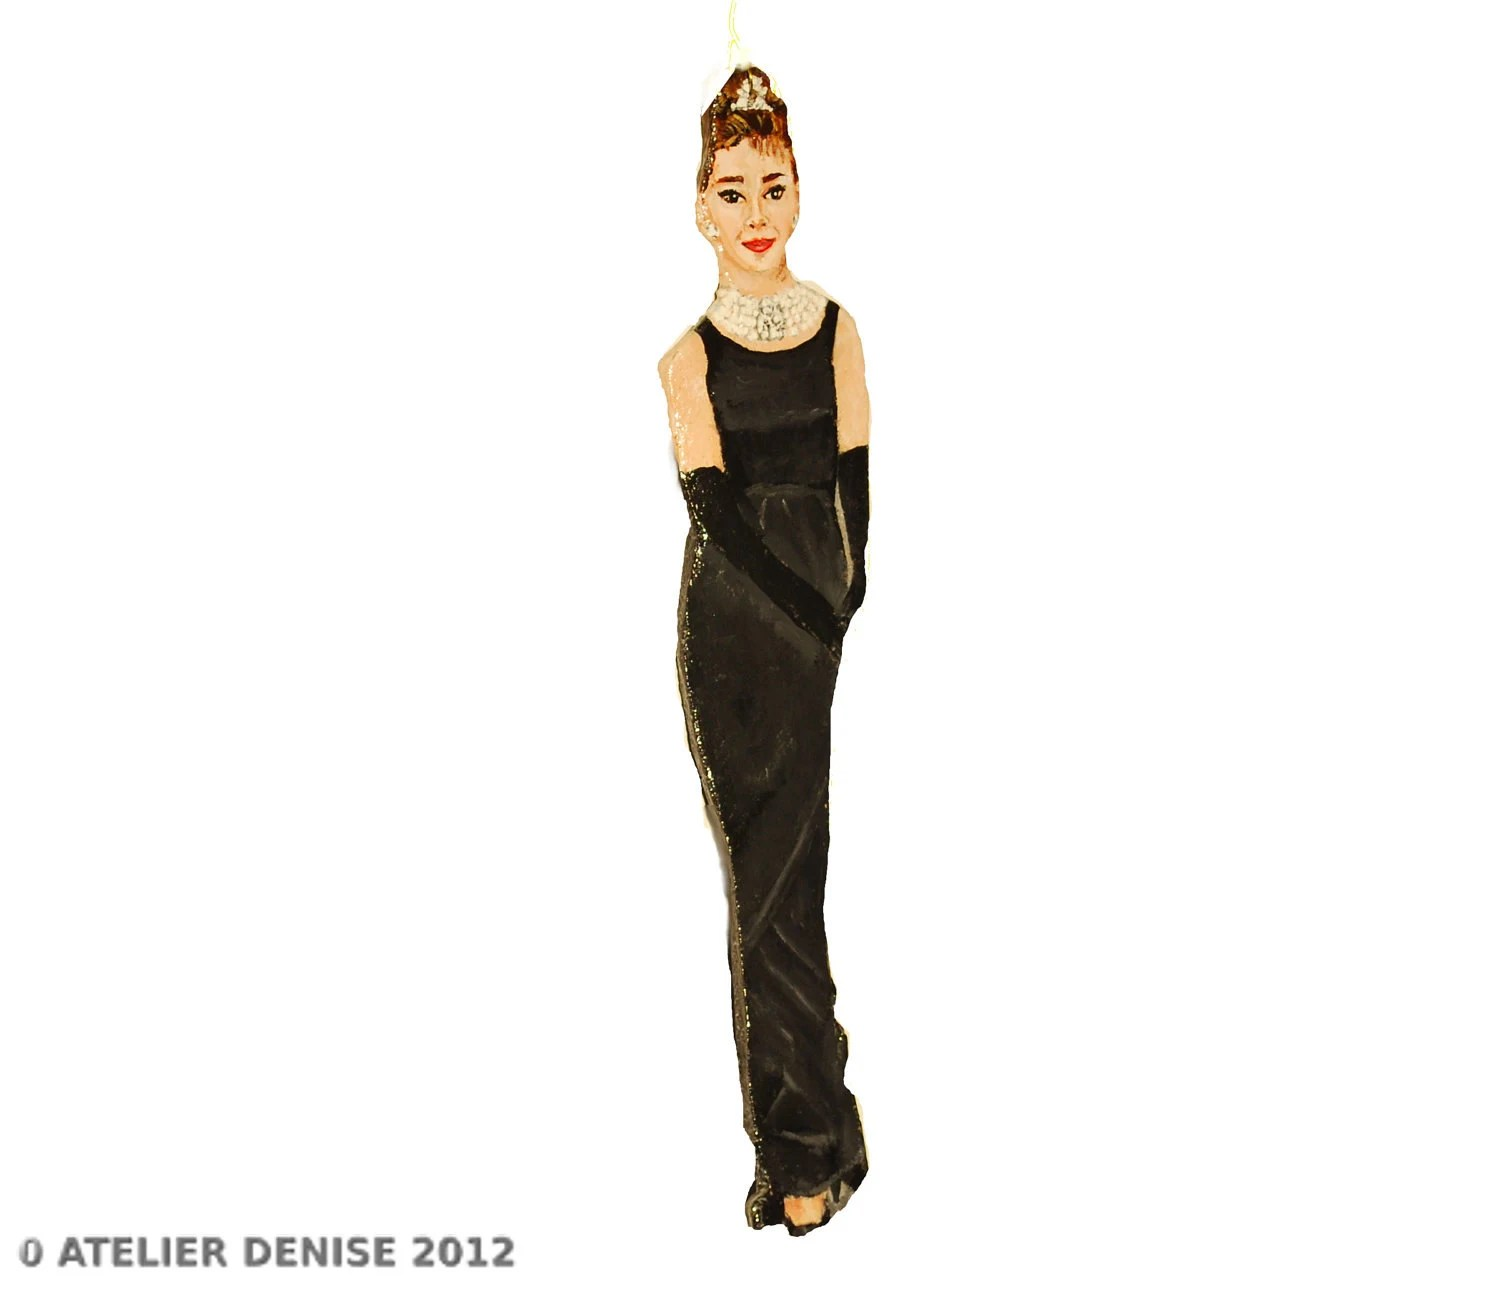 Audrey Hepburn Decorative Home Ornament - AtelierDenise